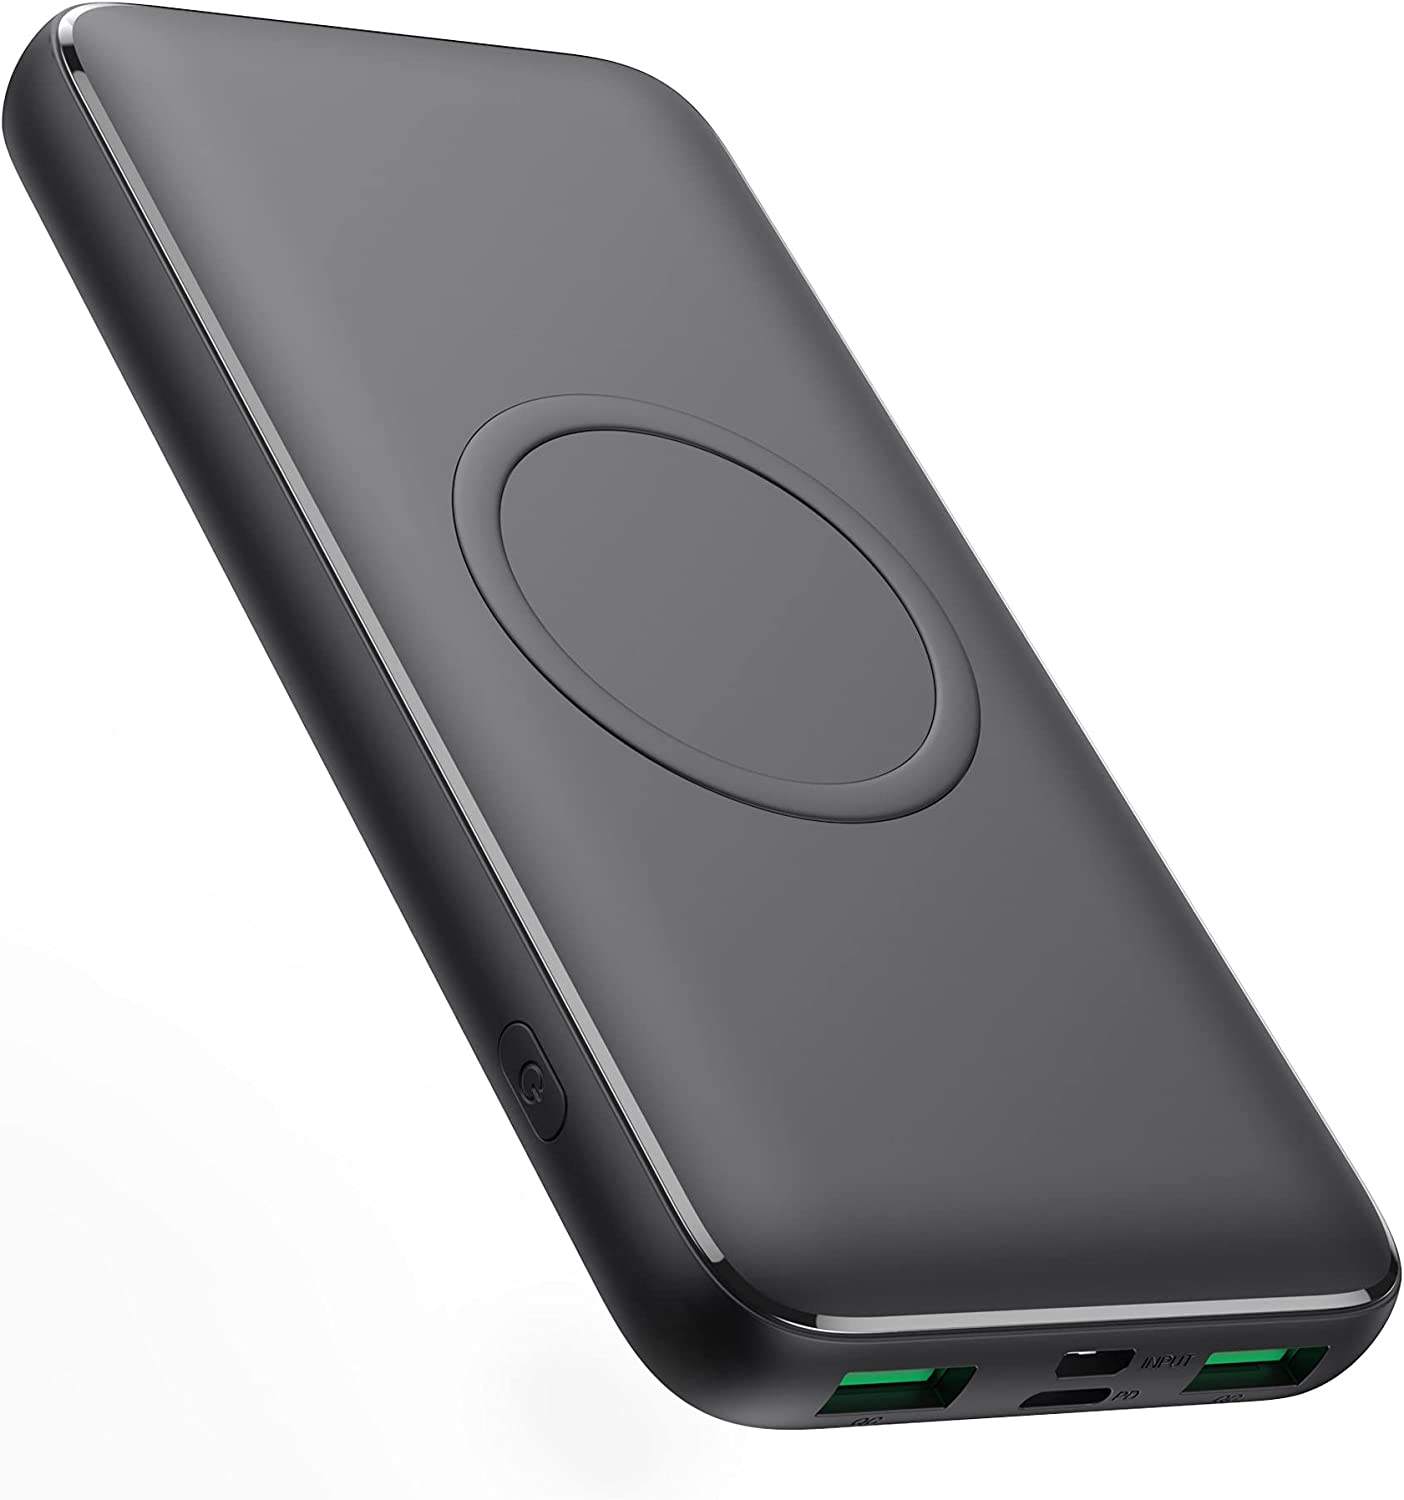 Wireless Portable Charger, Slim 13800mah Dual QC4.0 Fast Charging Power Bank, 15W Wireless Charging 25W PD Quick Charging Battery Pack, External Battery Charger Compatible with iPhone, Samsung, iPad